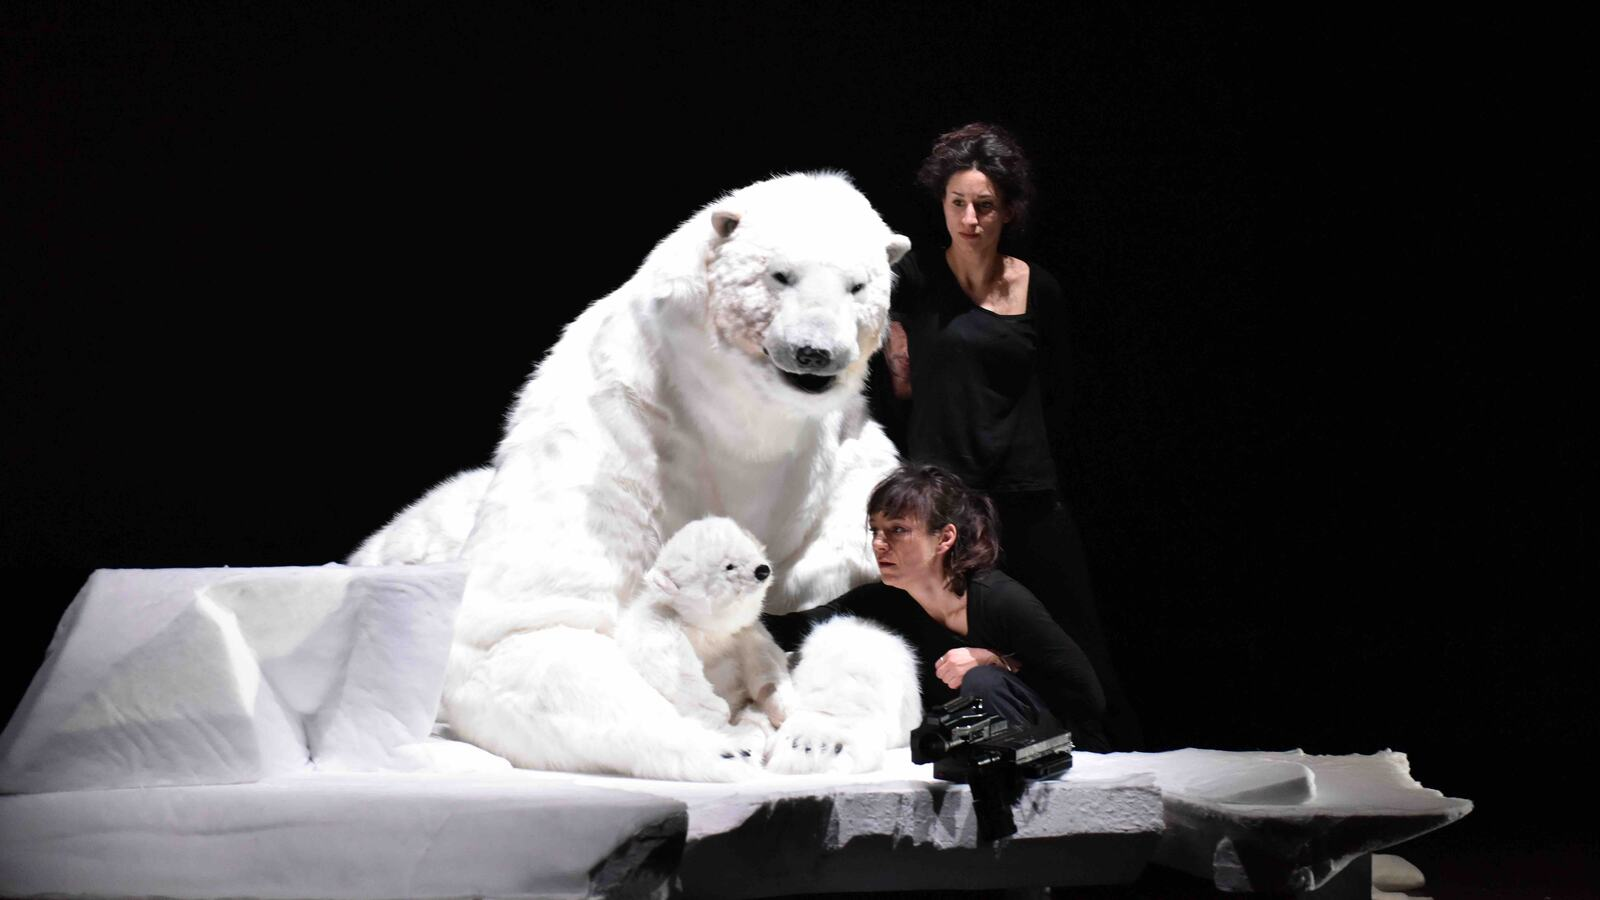 A scene from BACKUP, two women with polar bears